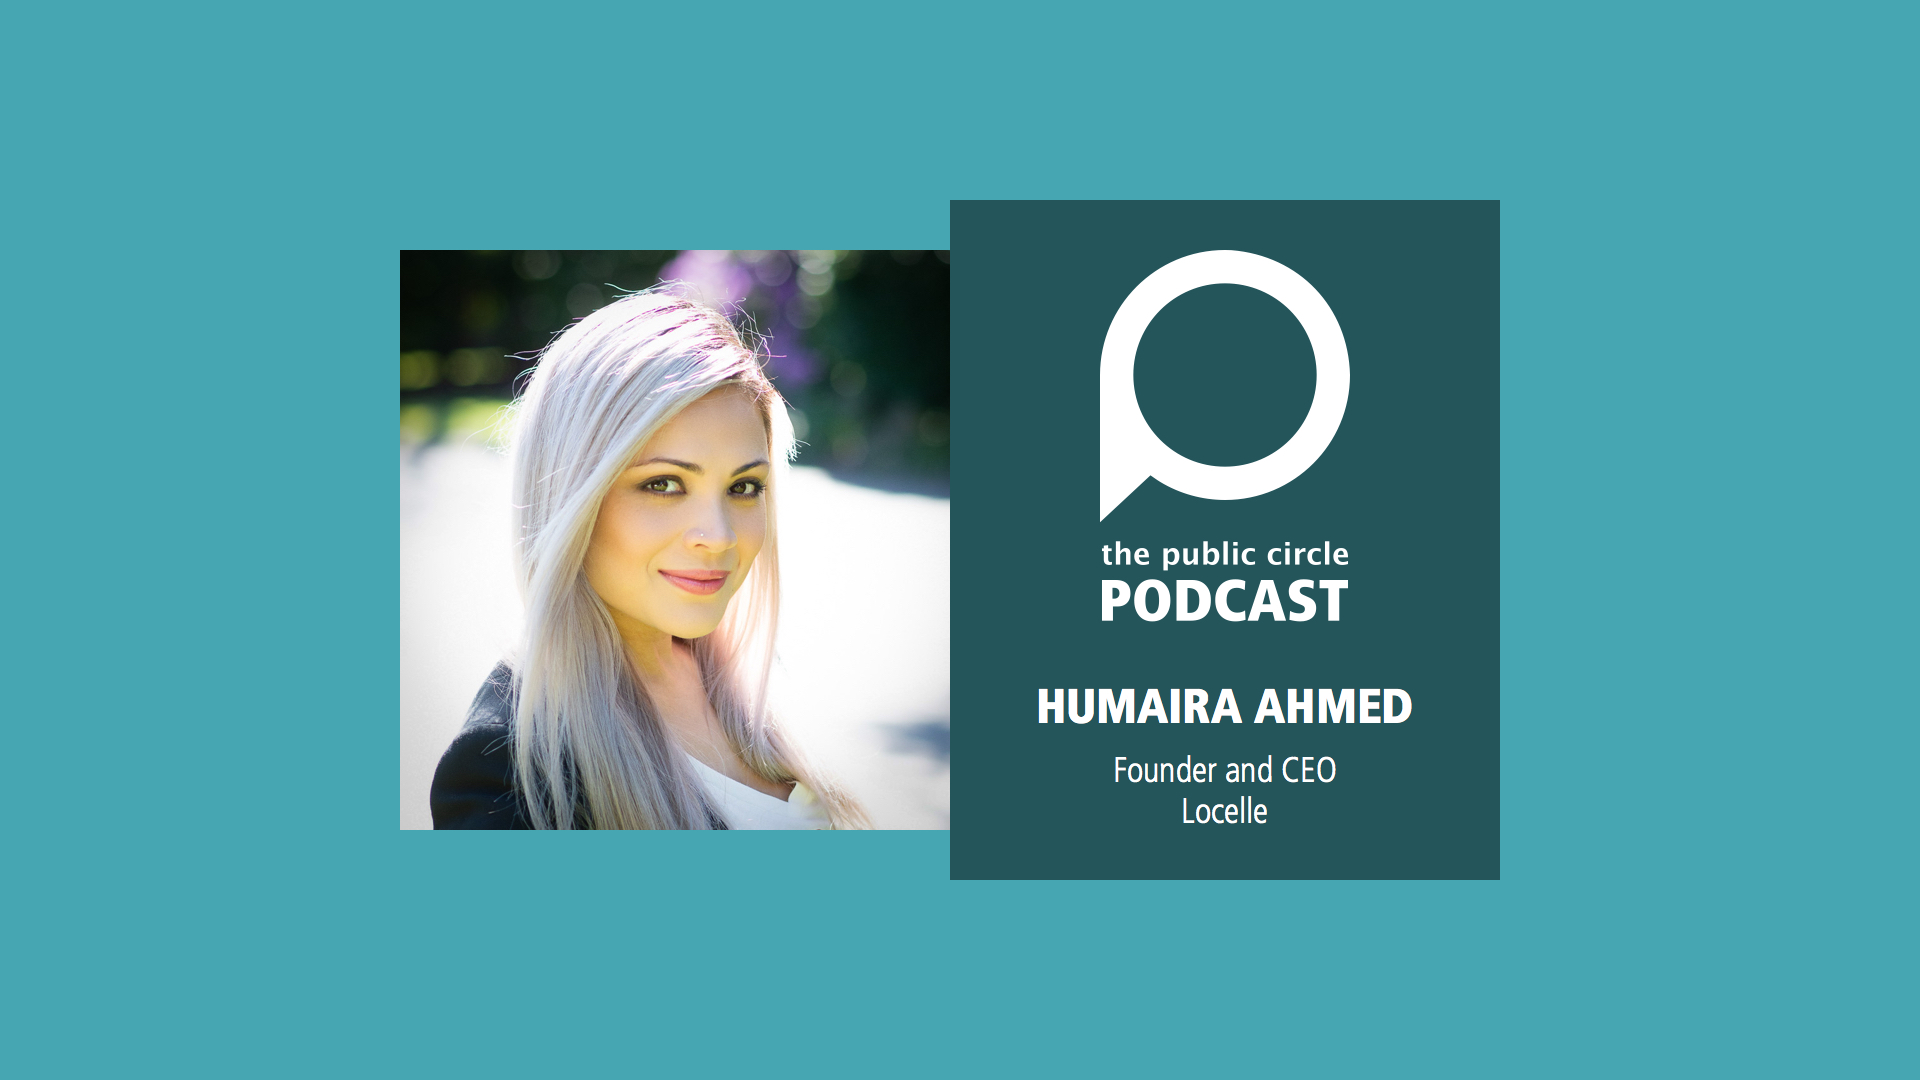 PODCAST: Humaira Ahmed, Founder and CEO of Locelle